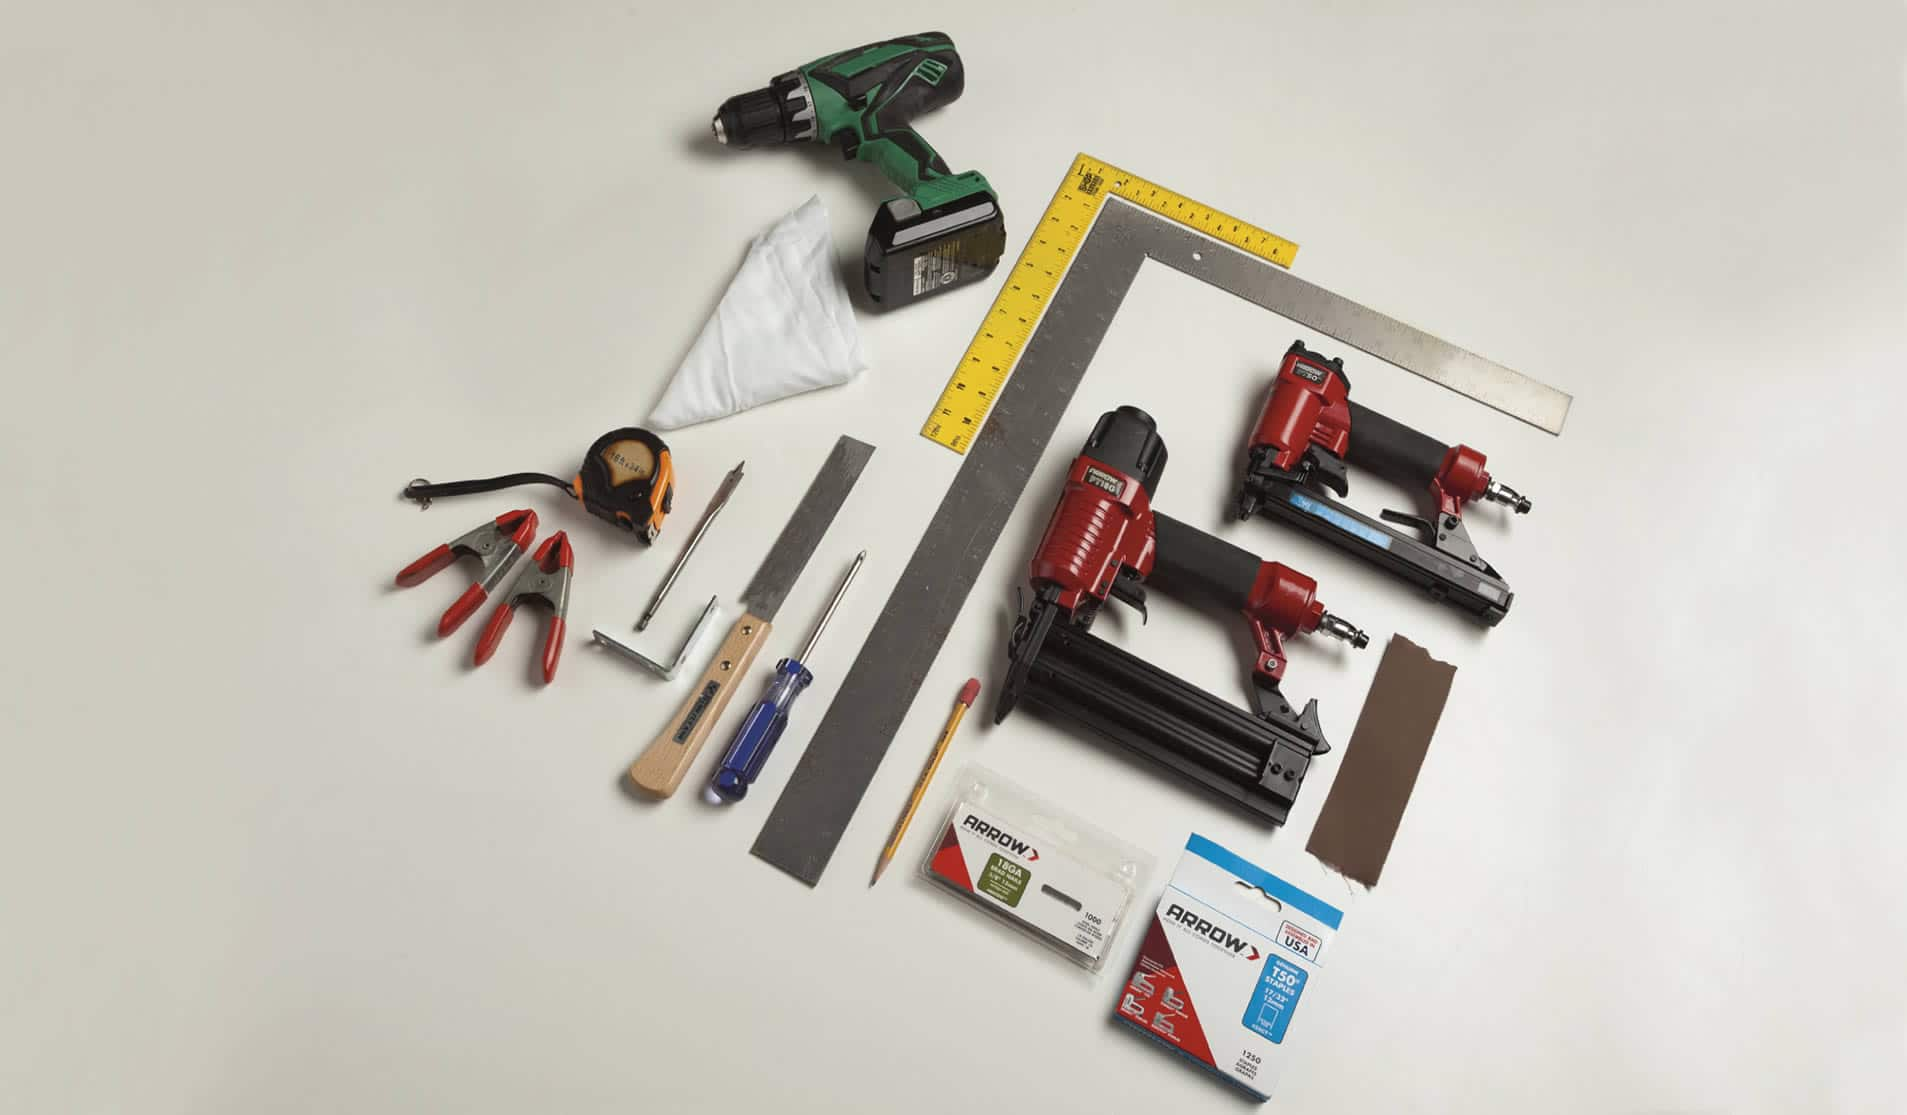 tool-organizer-arrow-project-tools-a.jpg